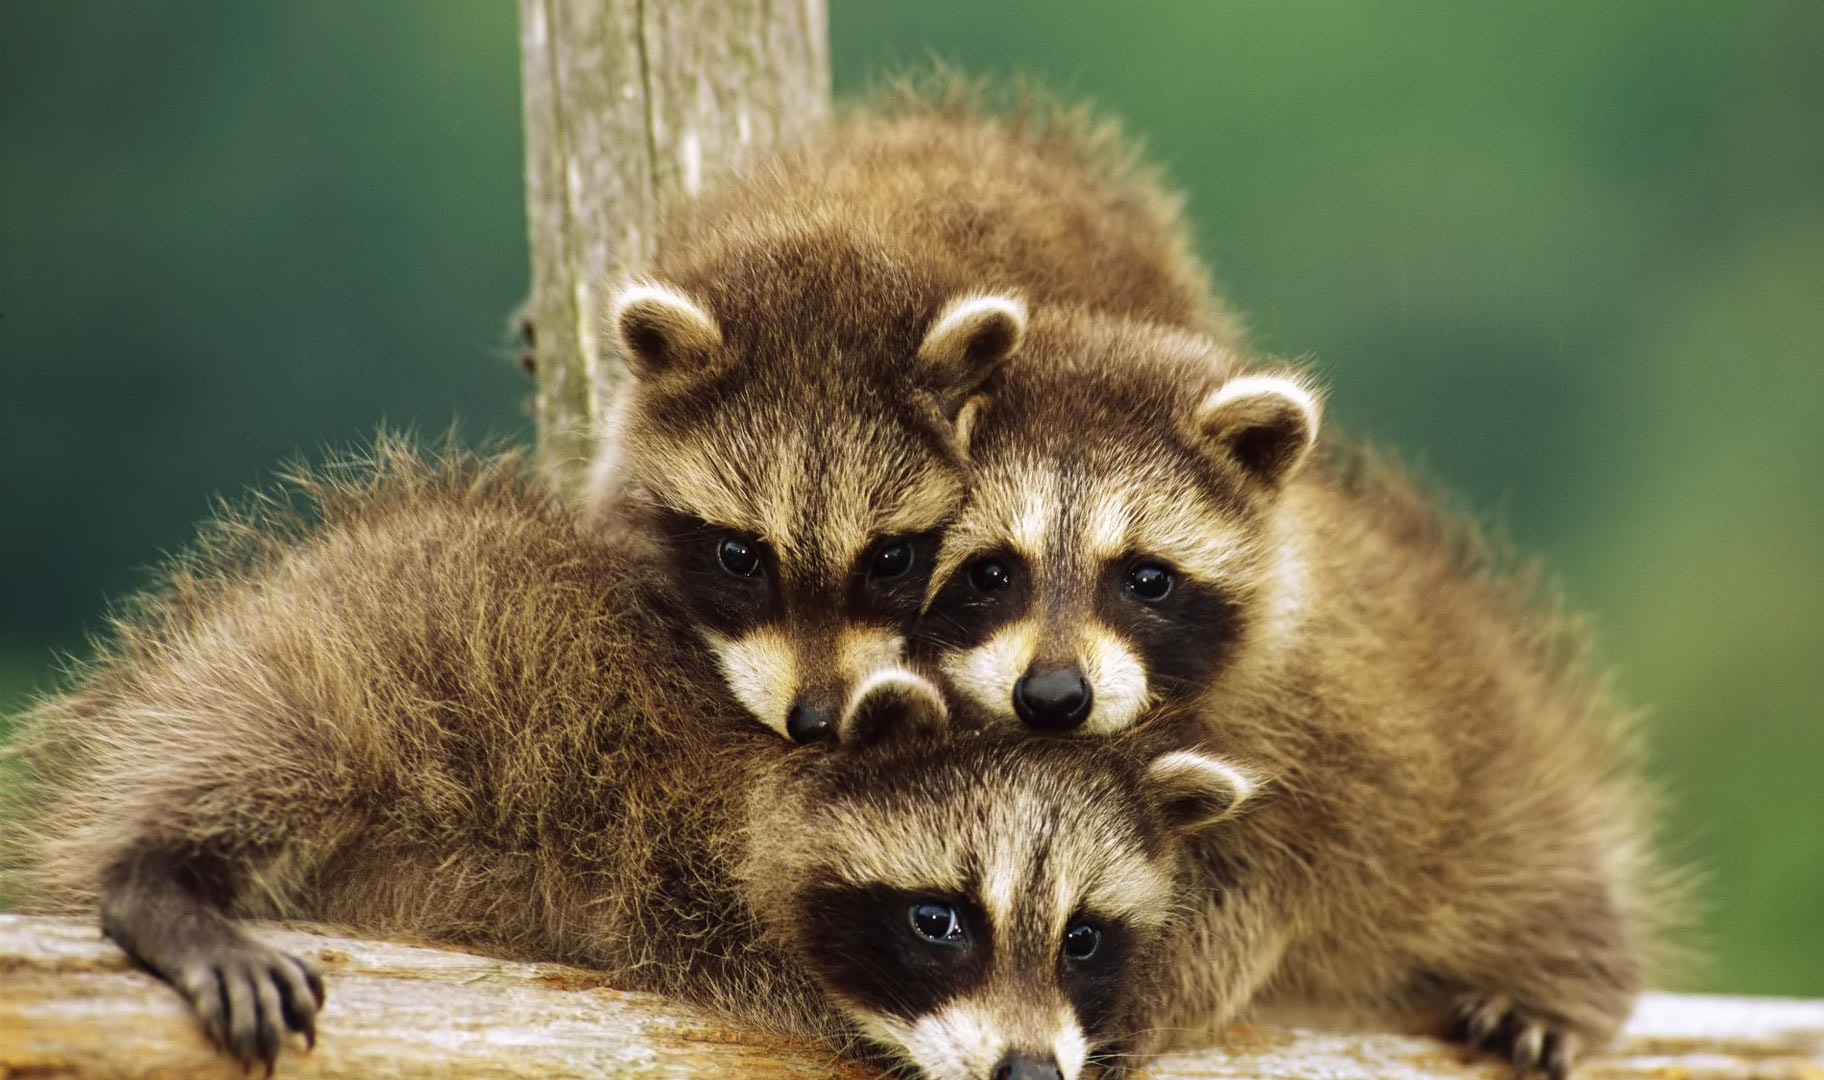 pictures of baby raccoons